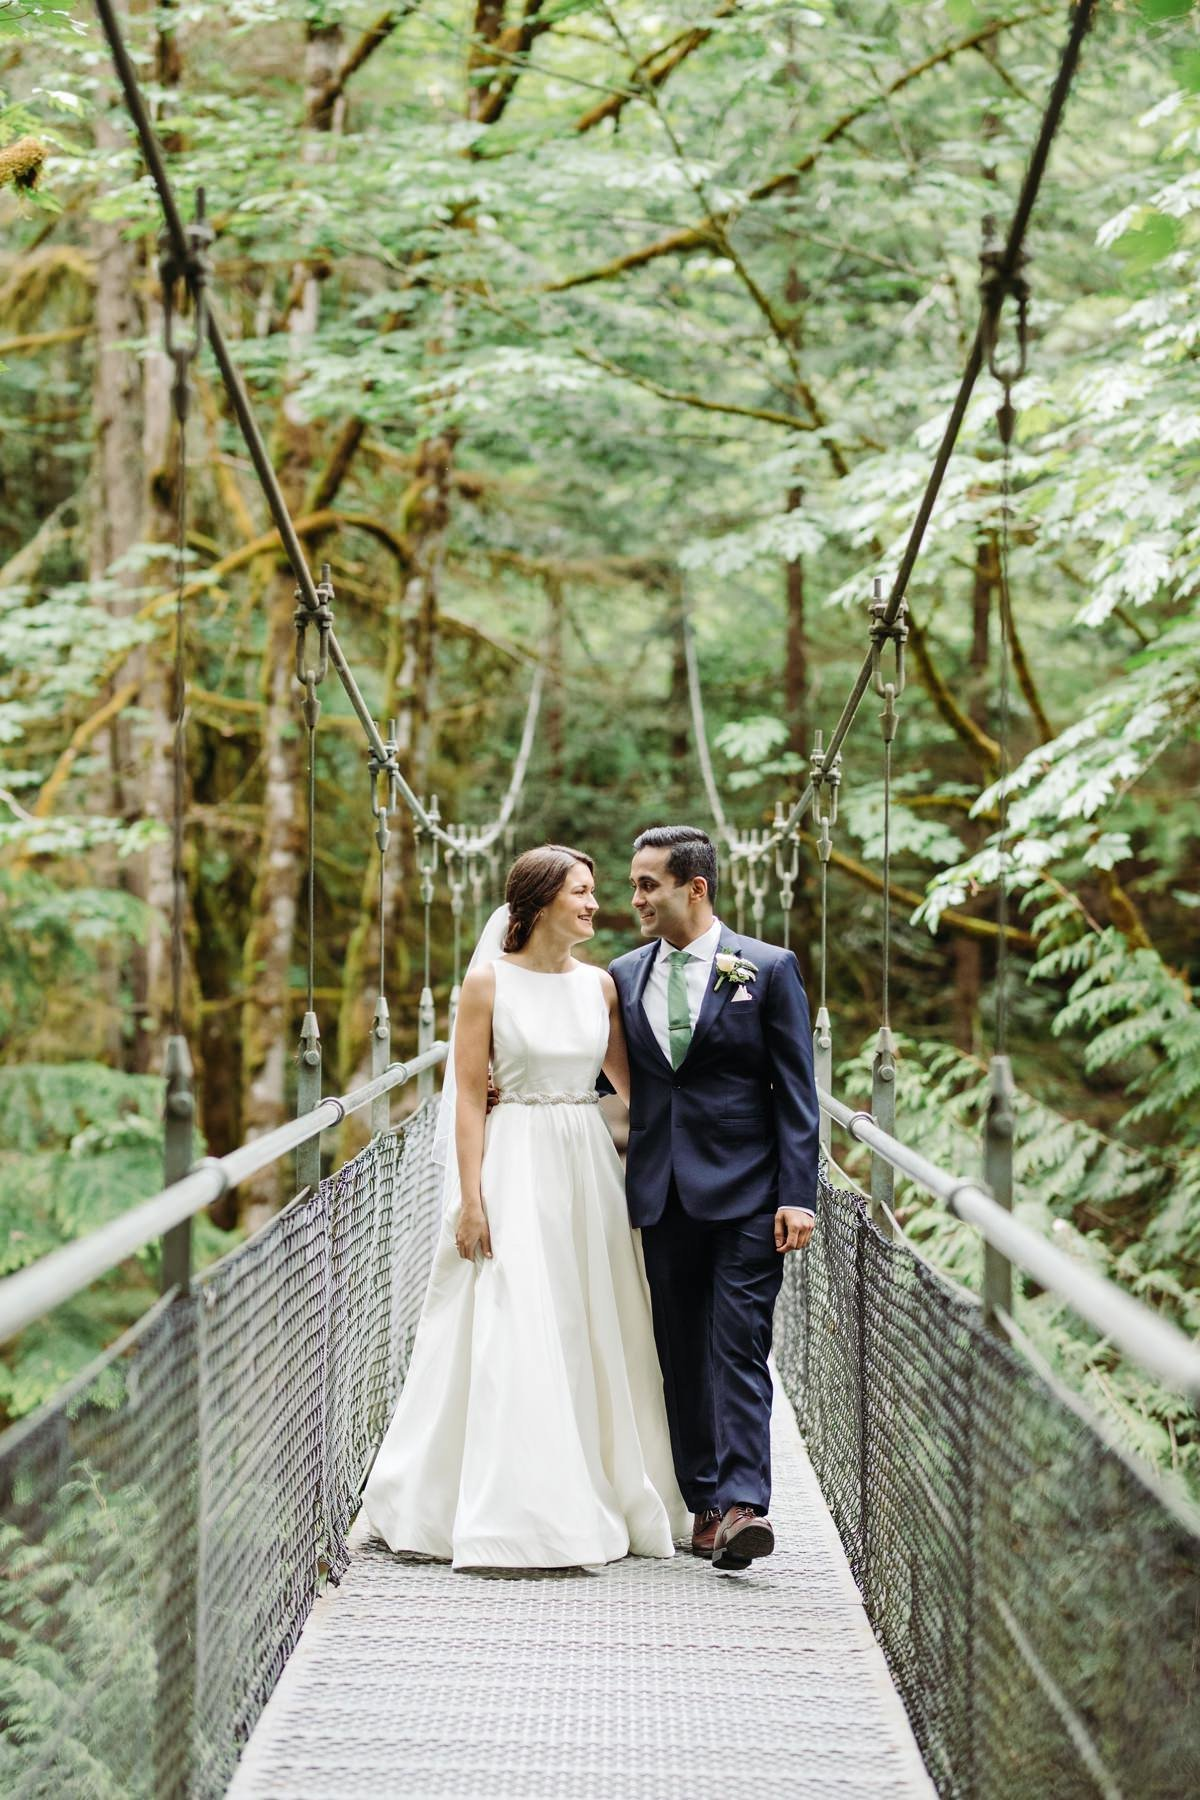 islandwood-bainbridge-island-wedding-photographer-seattle-cameron-zegers-0191